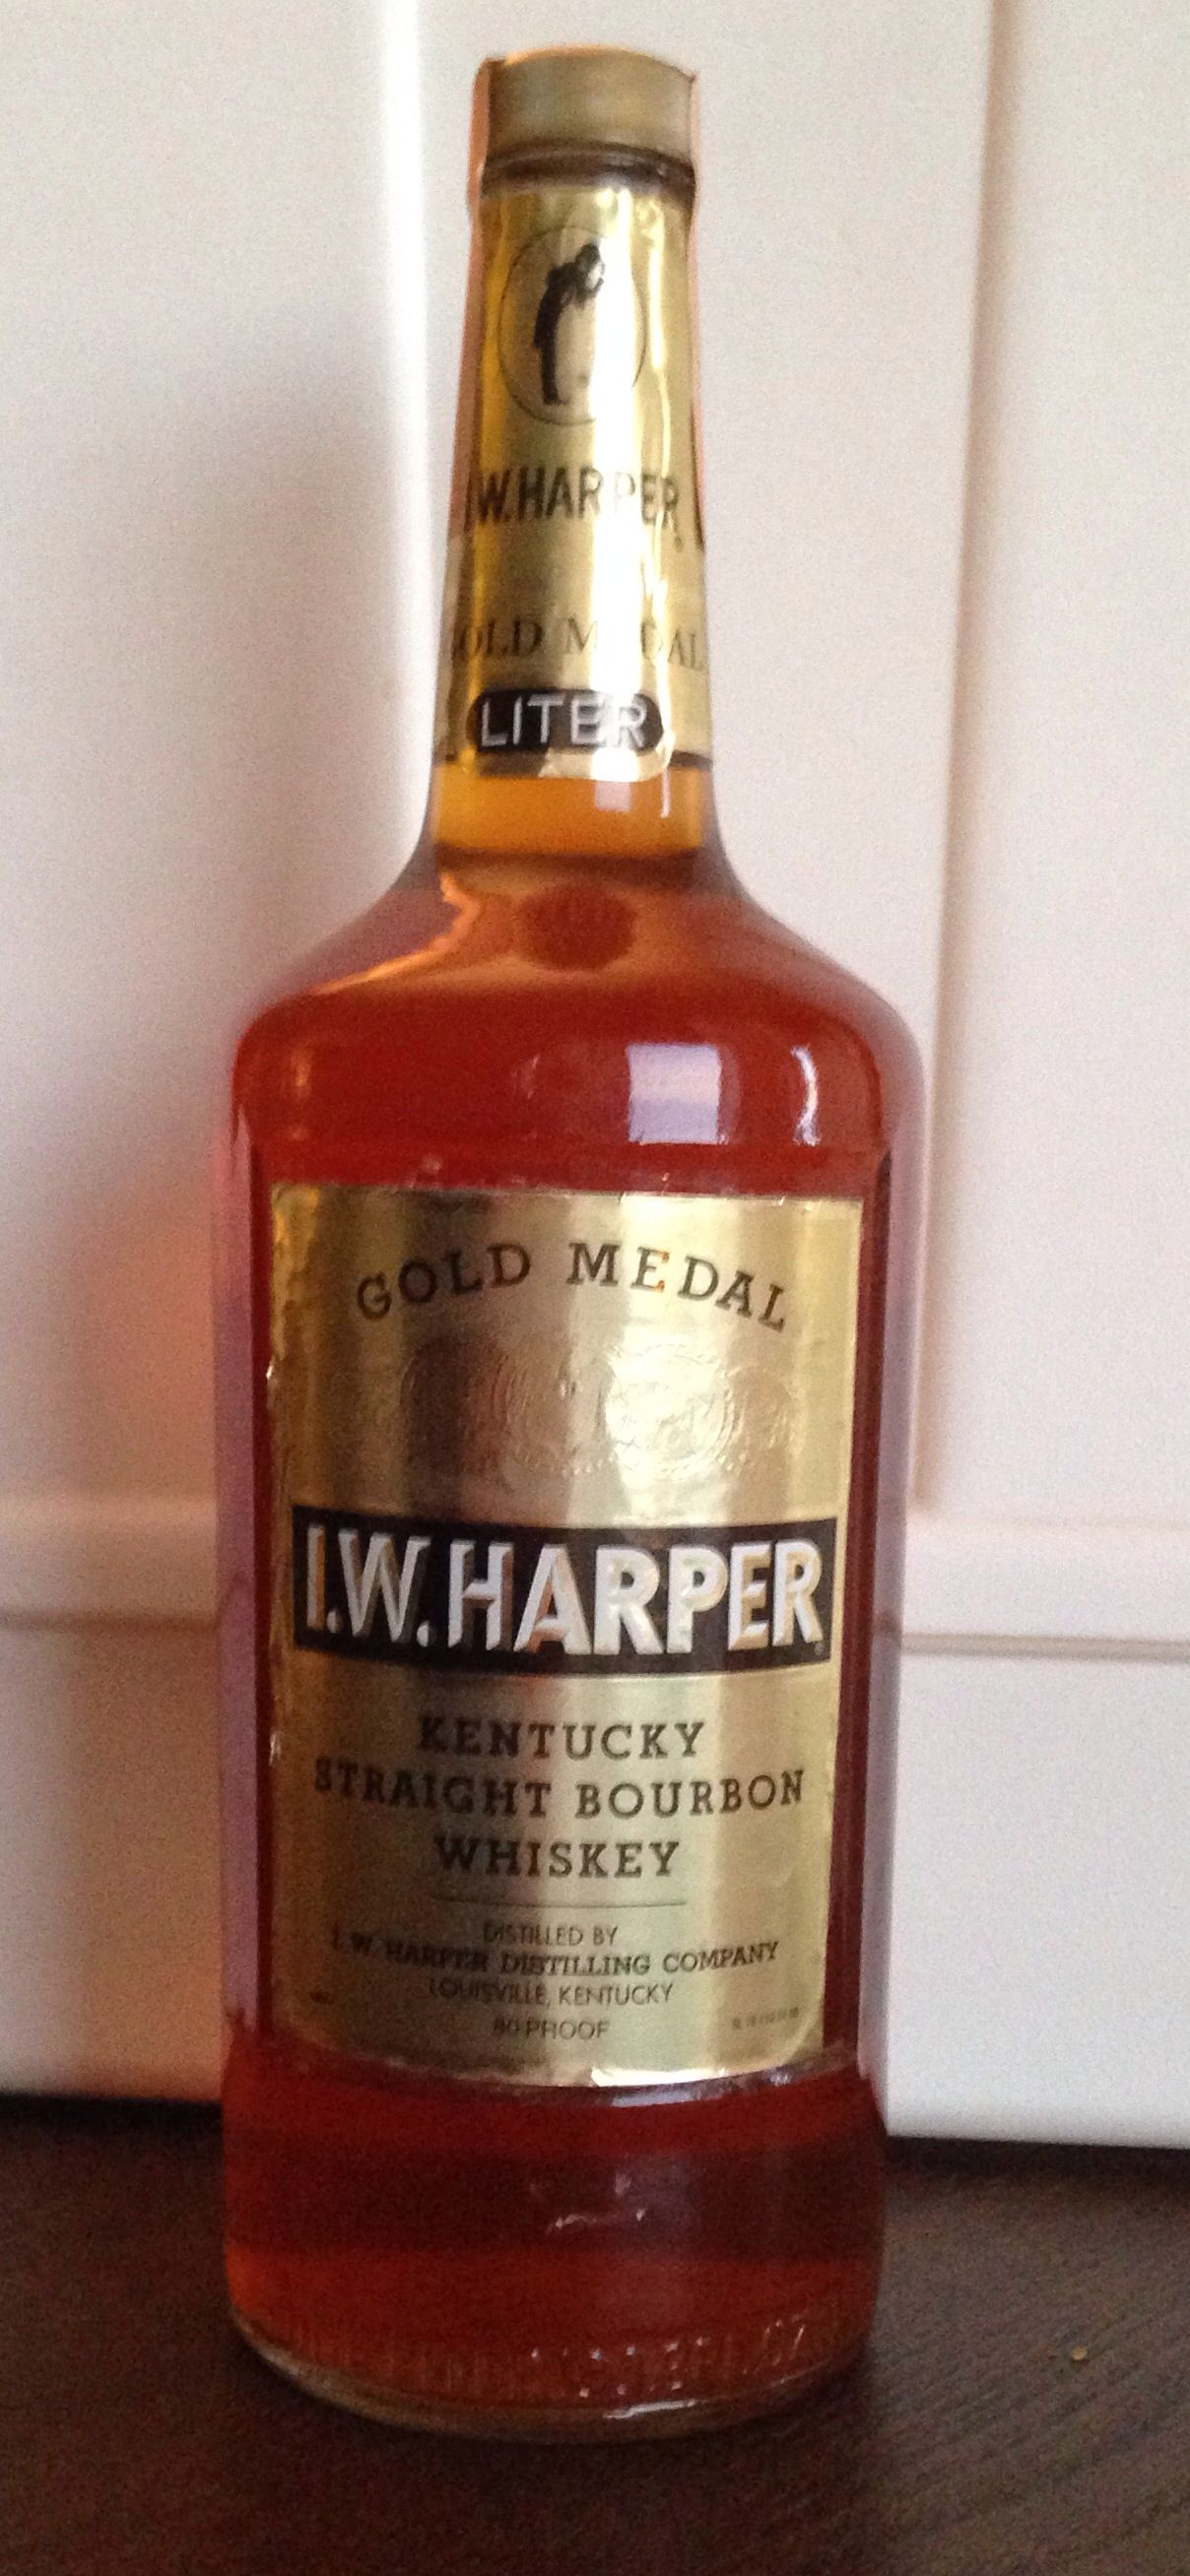 I W Harper Gold Medal Bourbon Early 80s 1981 Tax Stamp This One S A Little Weird Bourbon Kentucky Straight Bourbon Whiskey Bottle Label Design